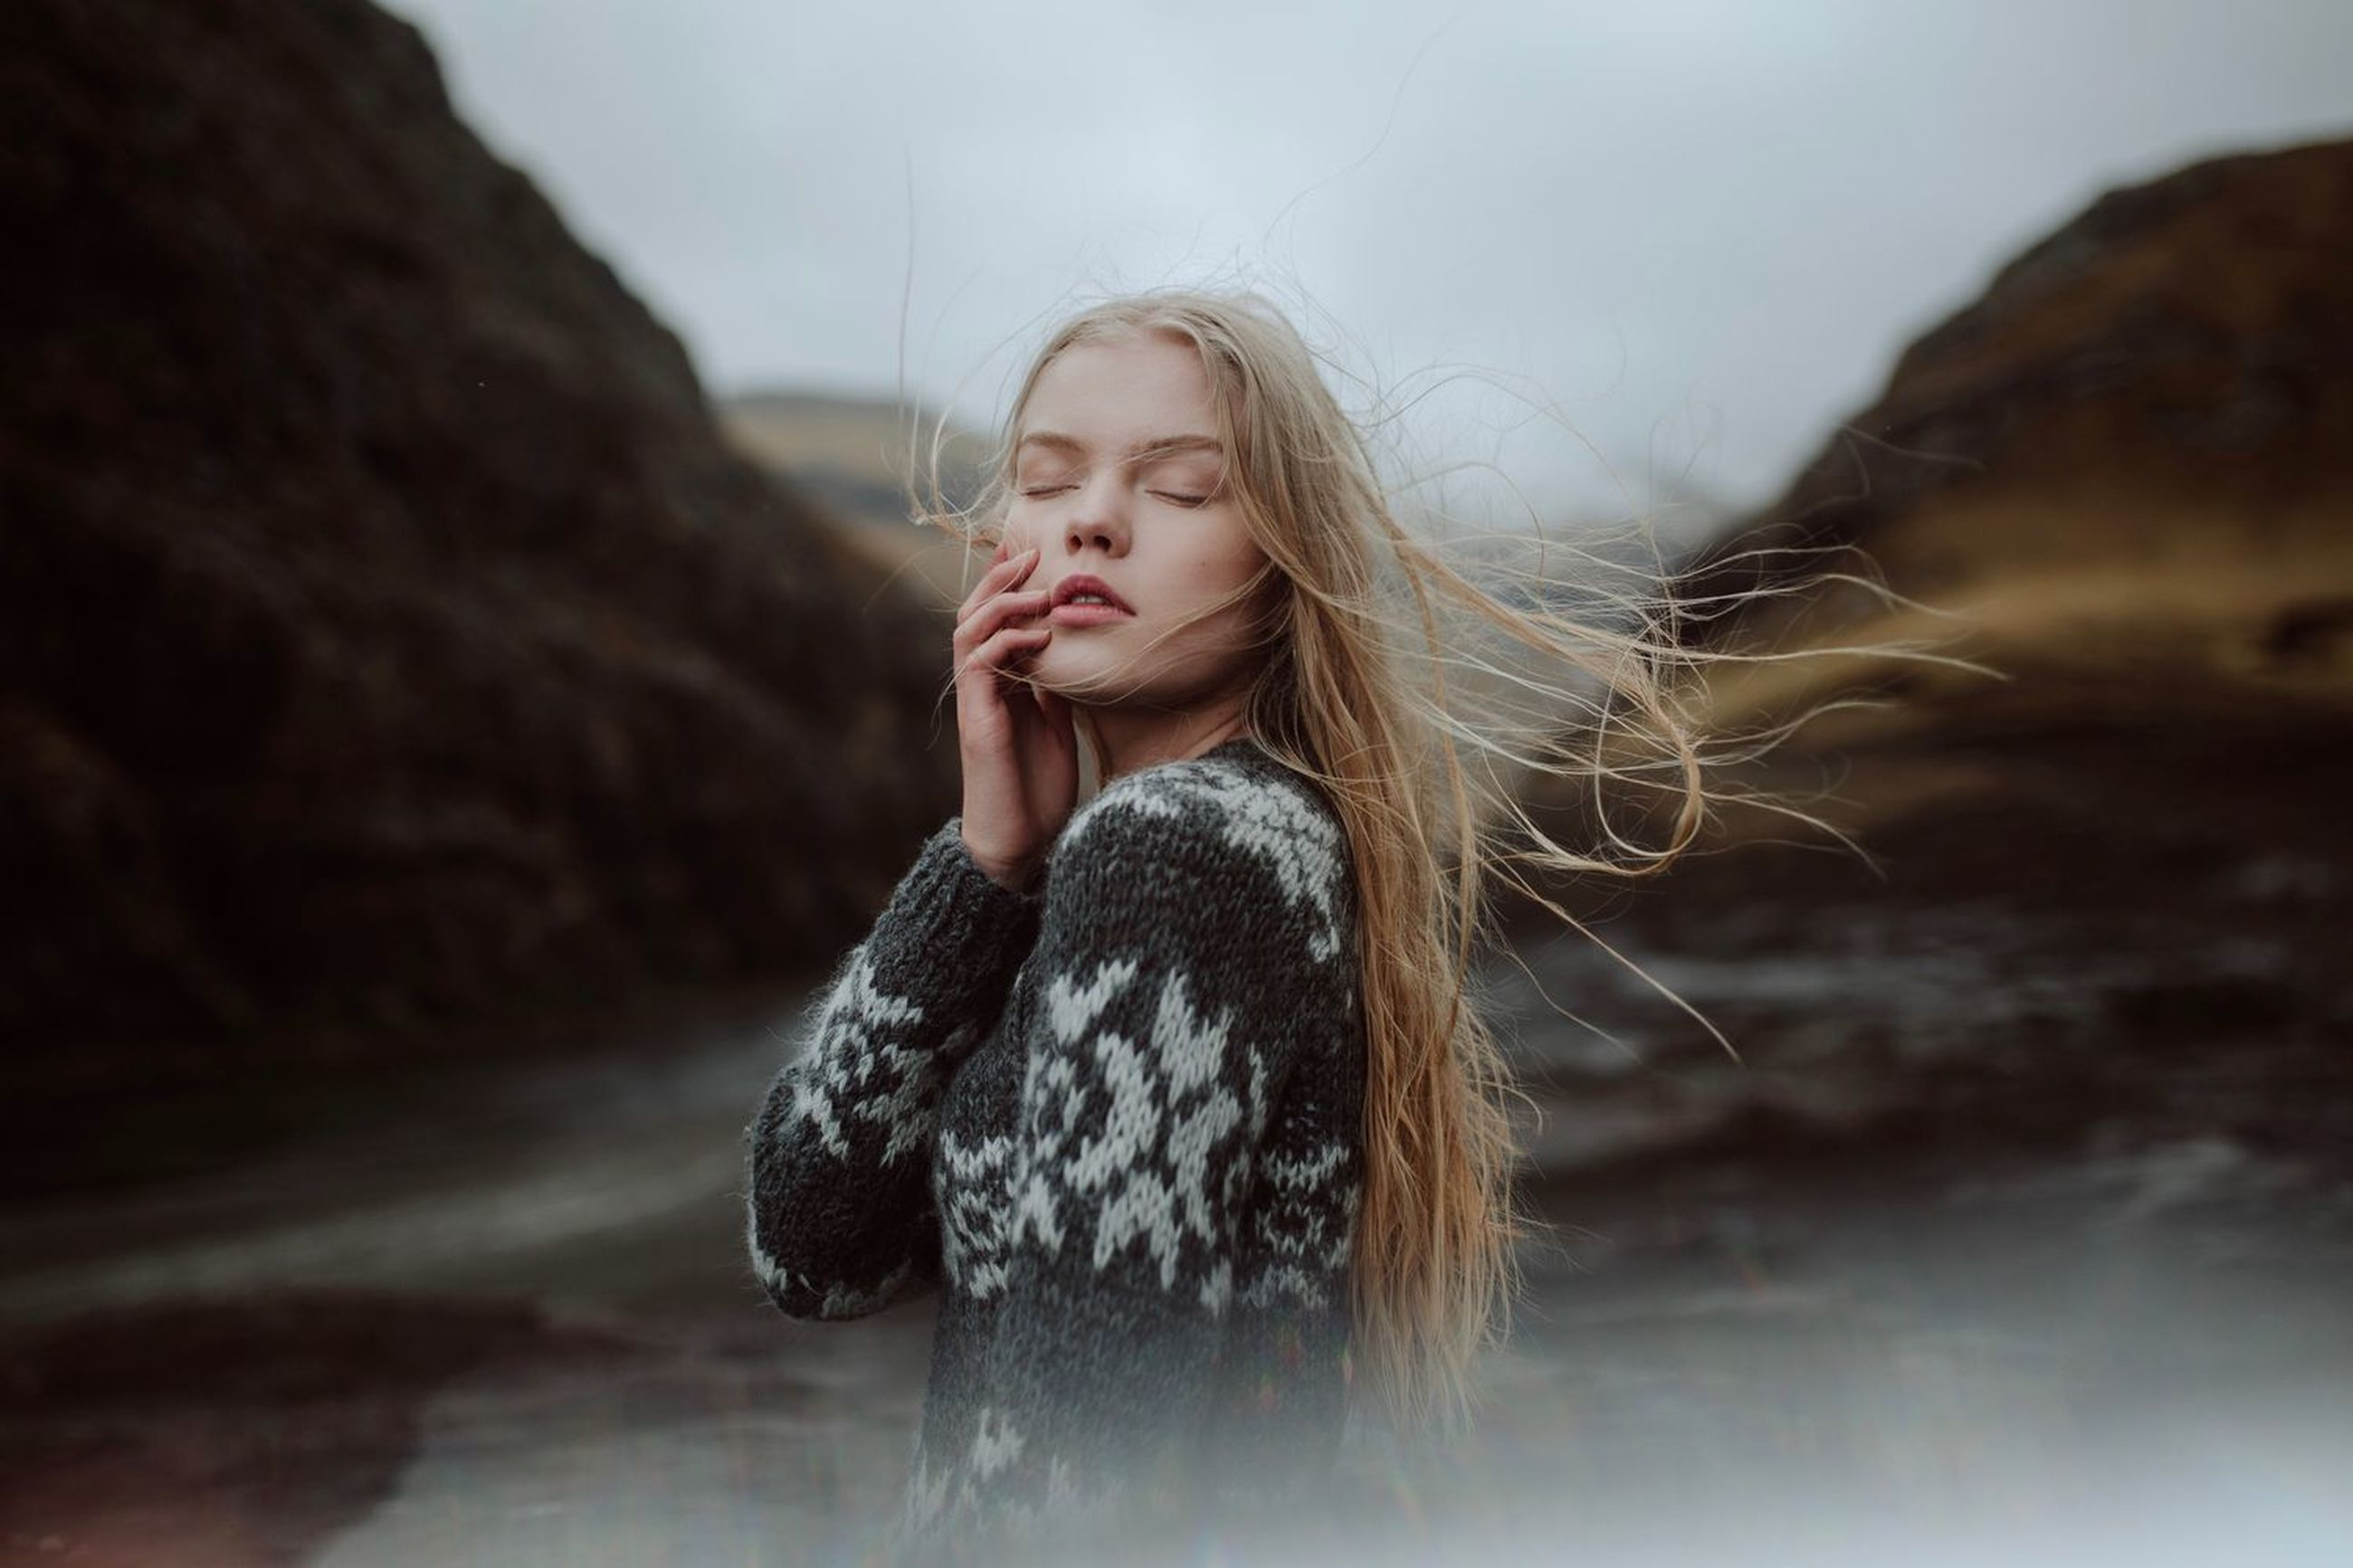 one person, child, hair, girls, childhood, long hair, warm clothing, front view, blond hair, looking, clothing, women, winter, waist up, hairstyle, standing, day, focus on foreground, contemplation, beautiful woman, outdoors, innocence